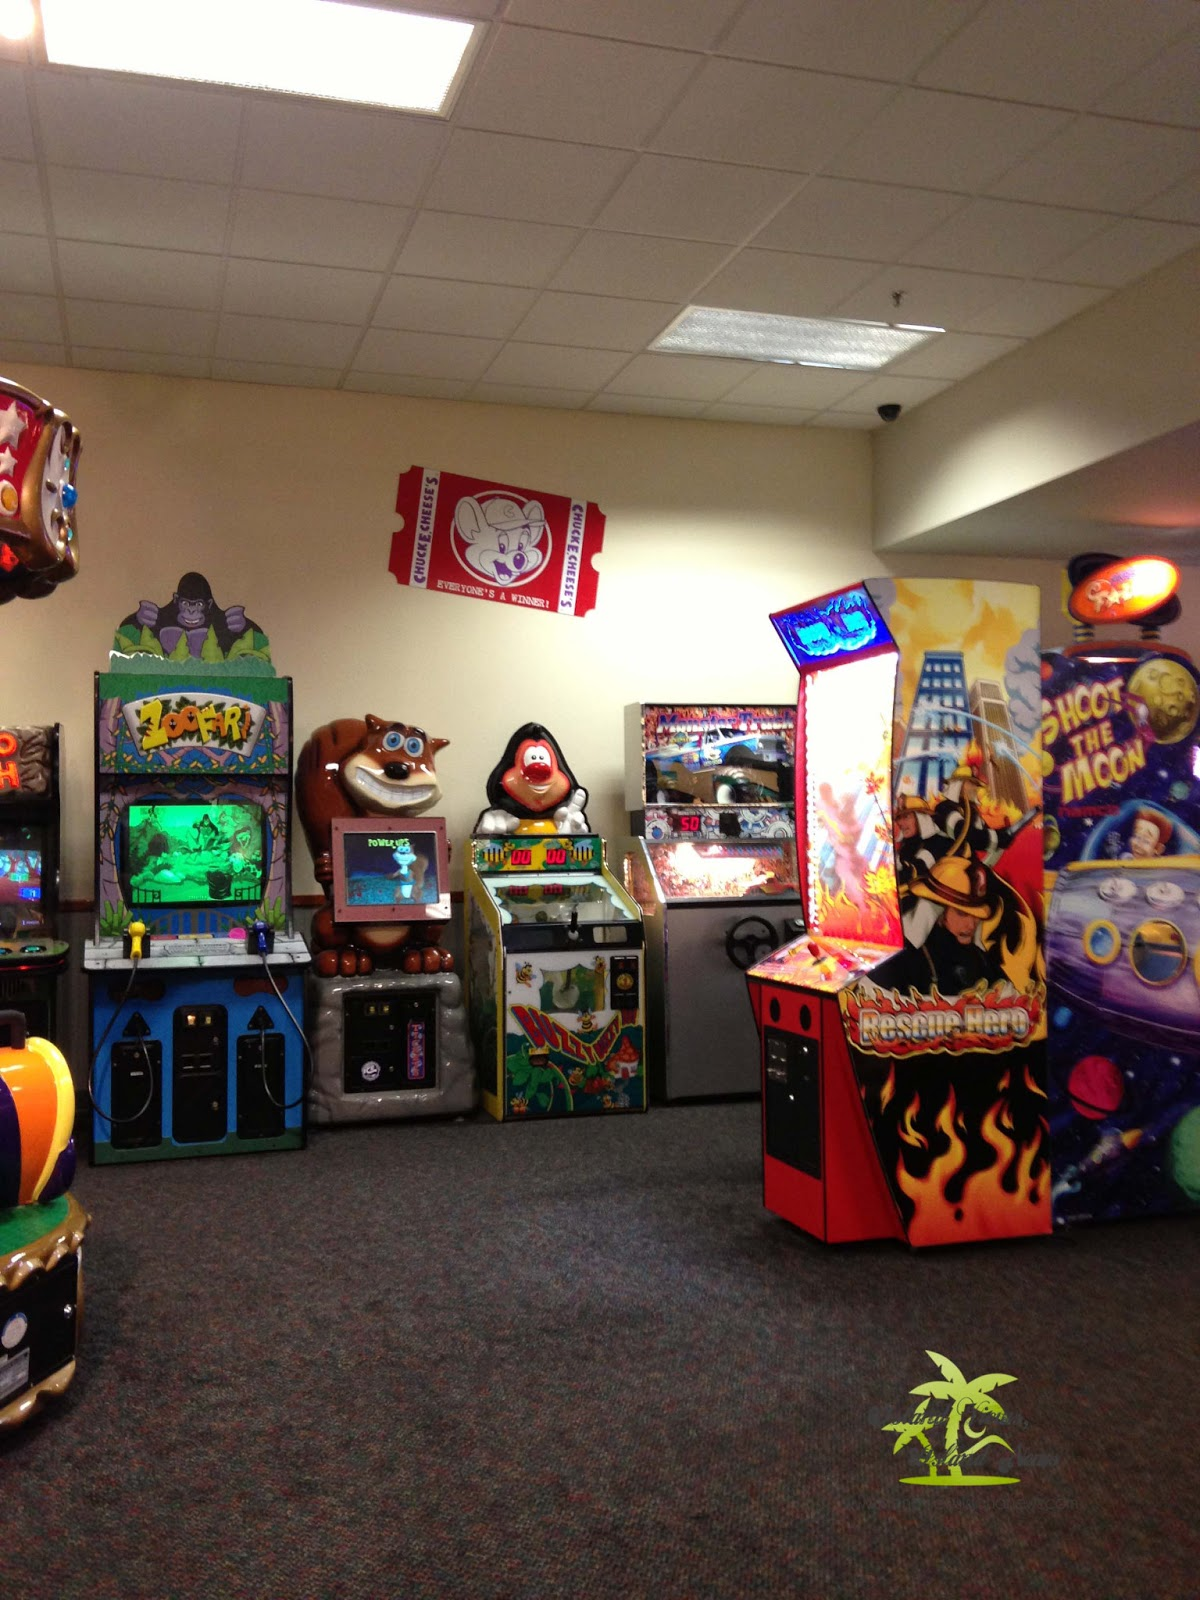 Chuck E Cheese Games 2014 Chuck e  cheese s Chuck E Cheese Games 2014